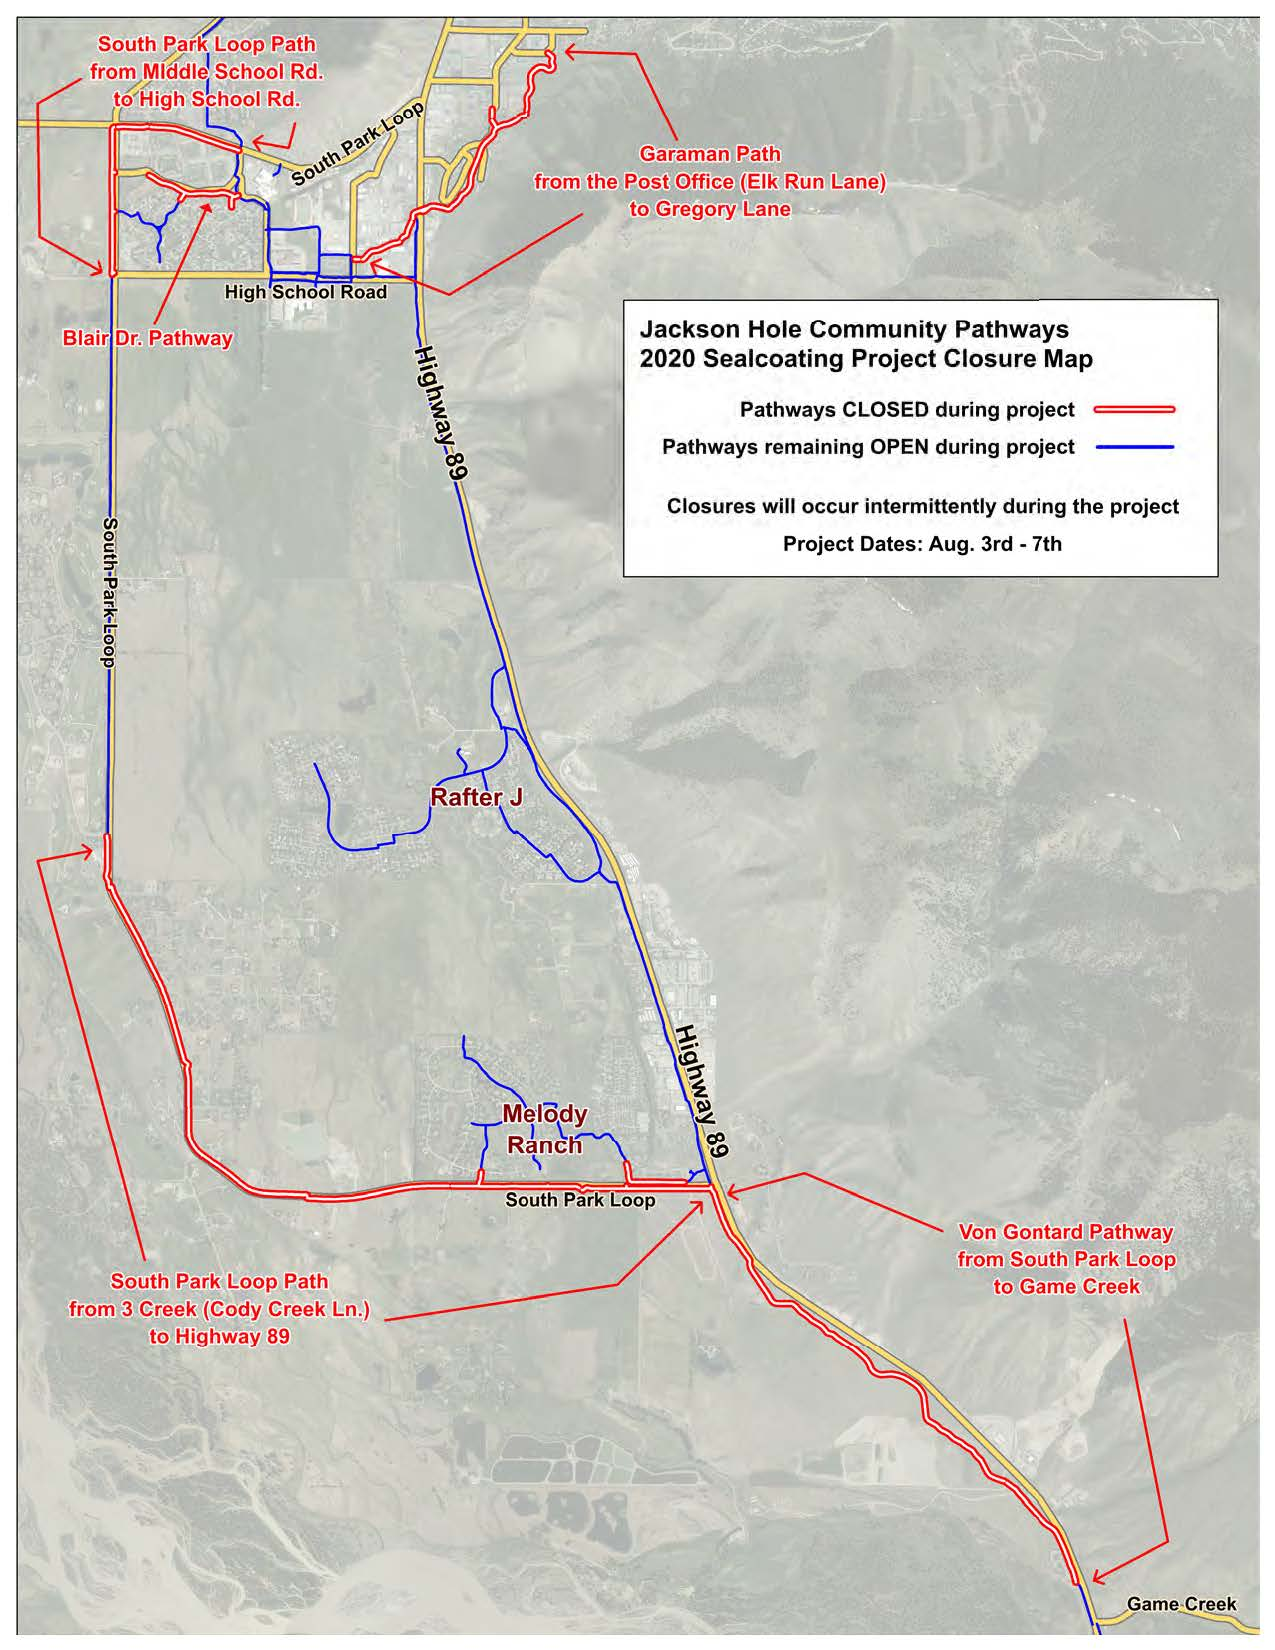 2020 Sealcoating - Overview Closure Map